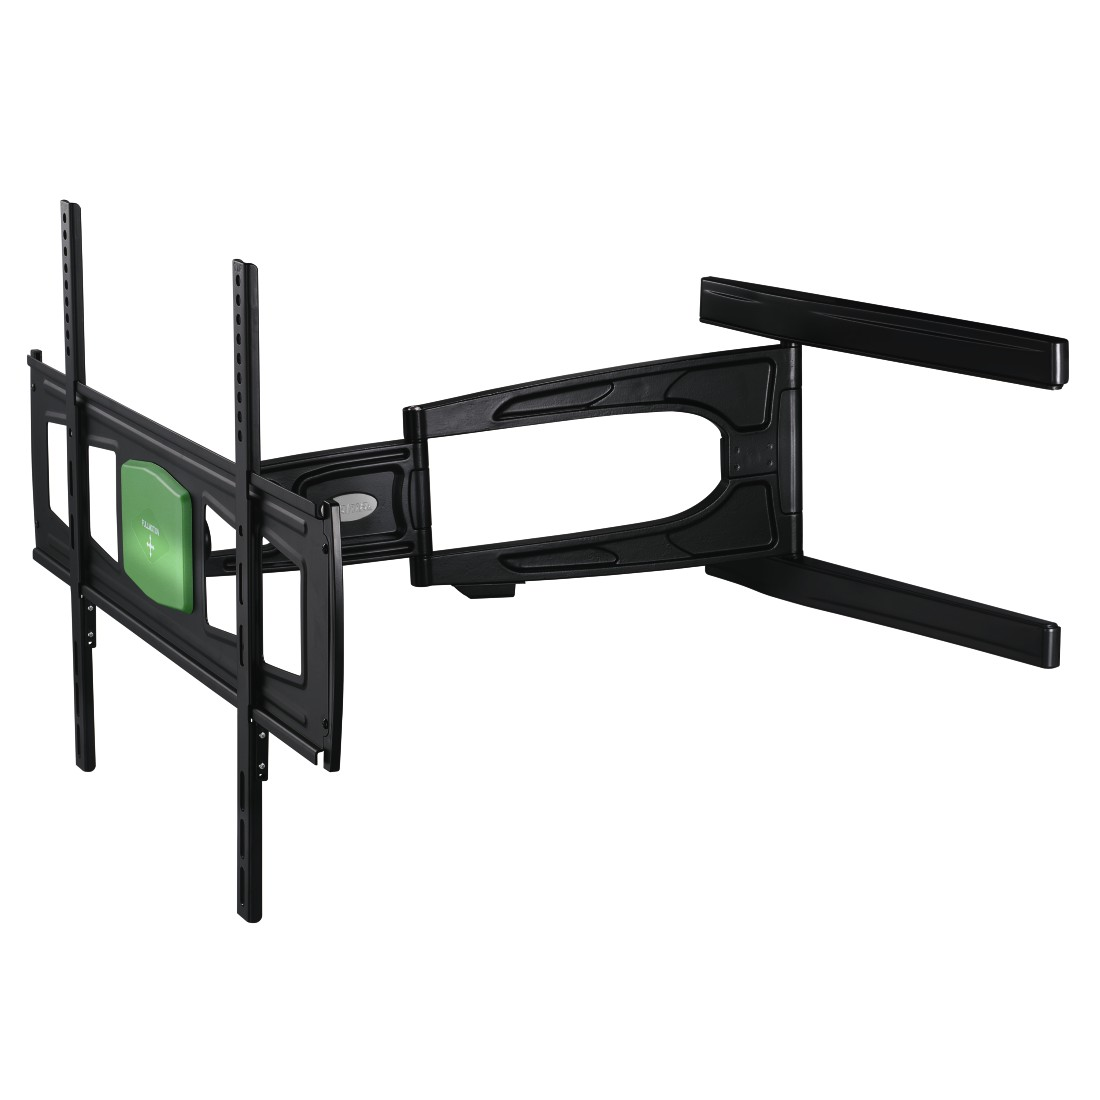 "dex7 High-Res Detail 7 - Hama, Ultraslim FULLMOTION TV Wall Bracket, 3 Stars, 165cm (65""), 2 Arm, black"